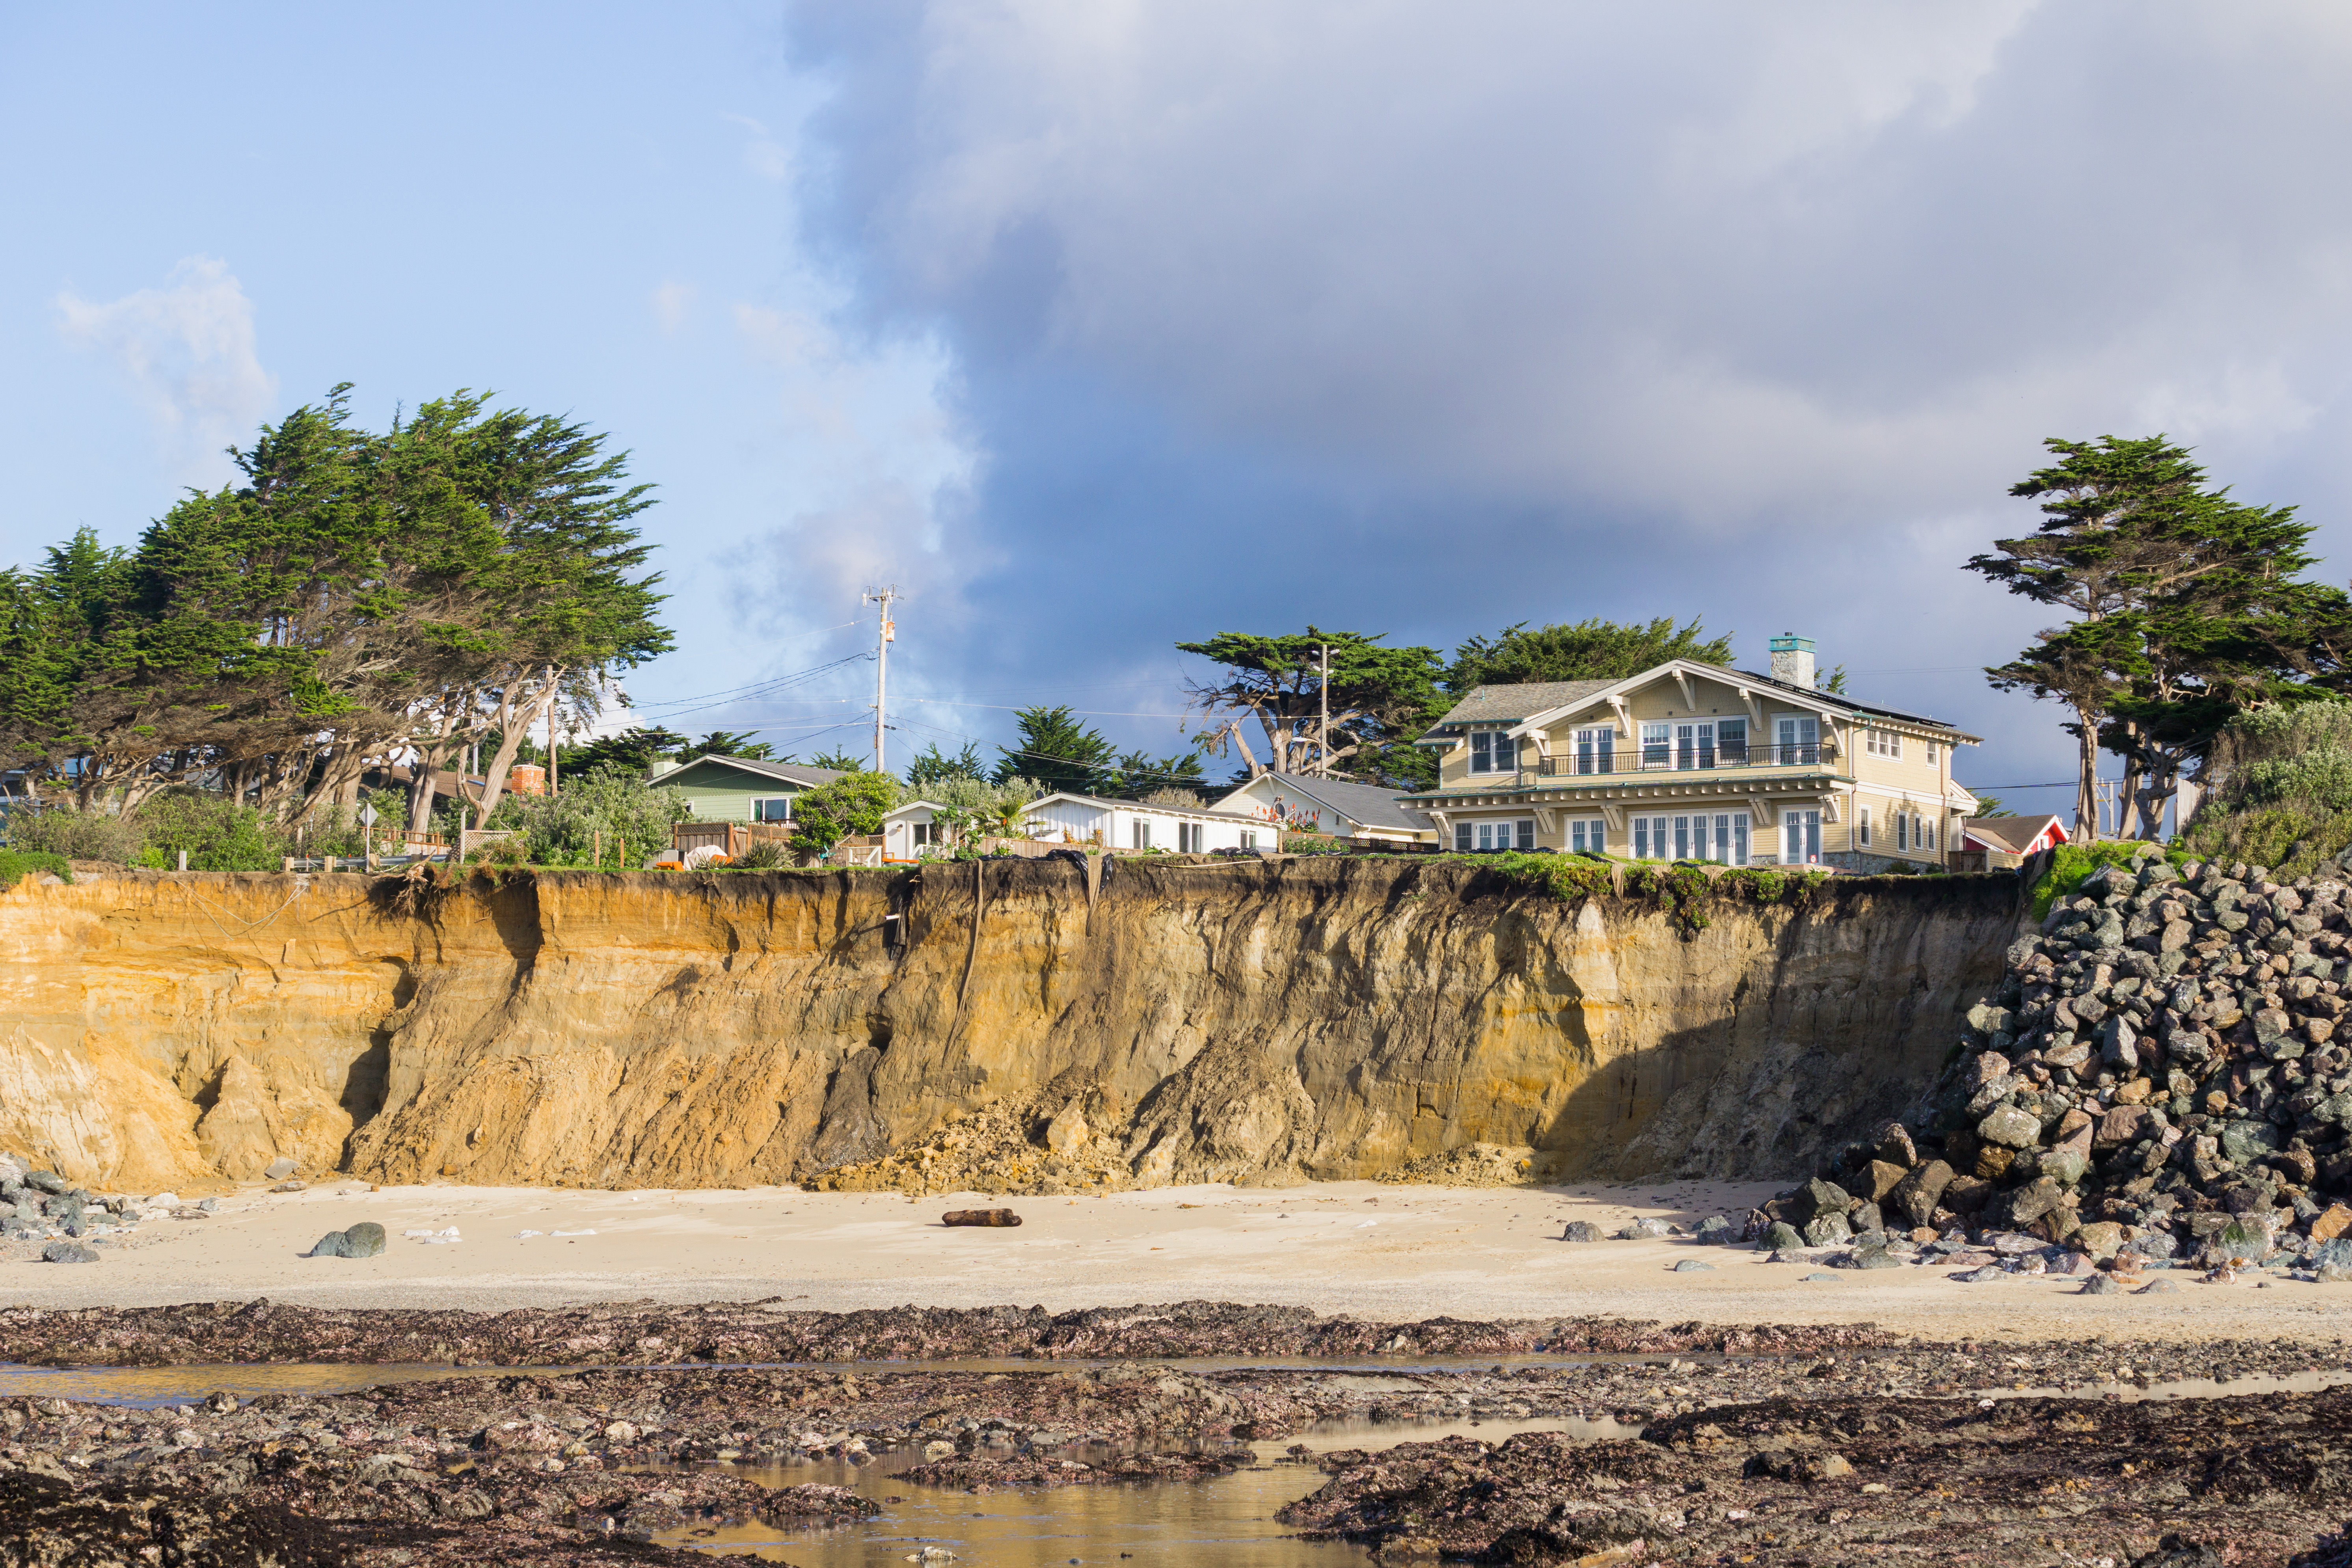 A beach with a cliff and a home on top.